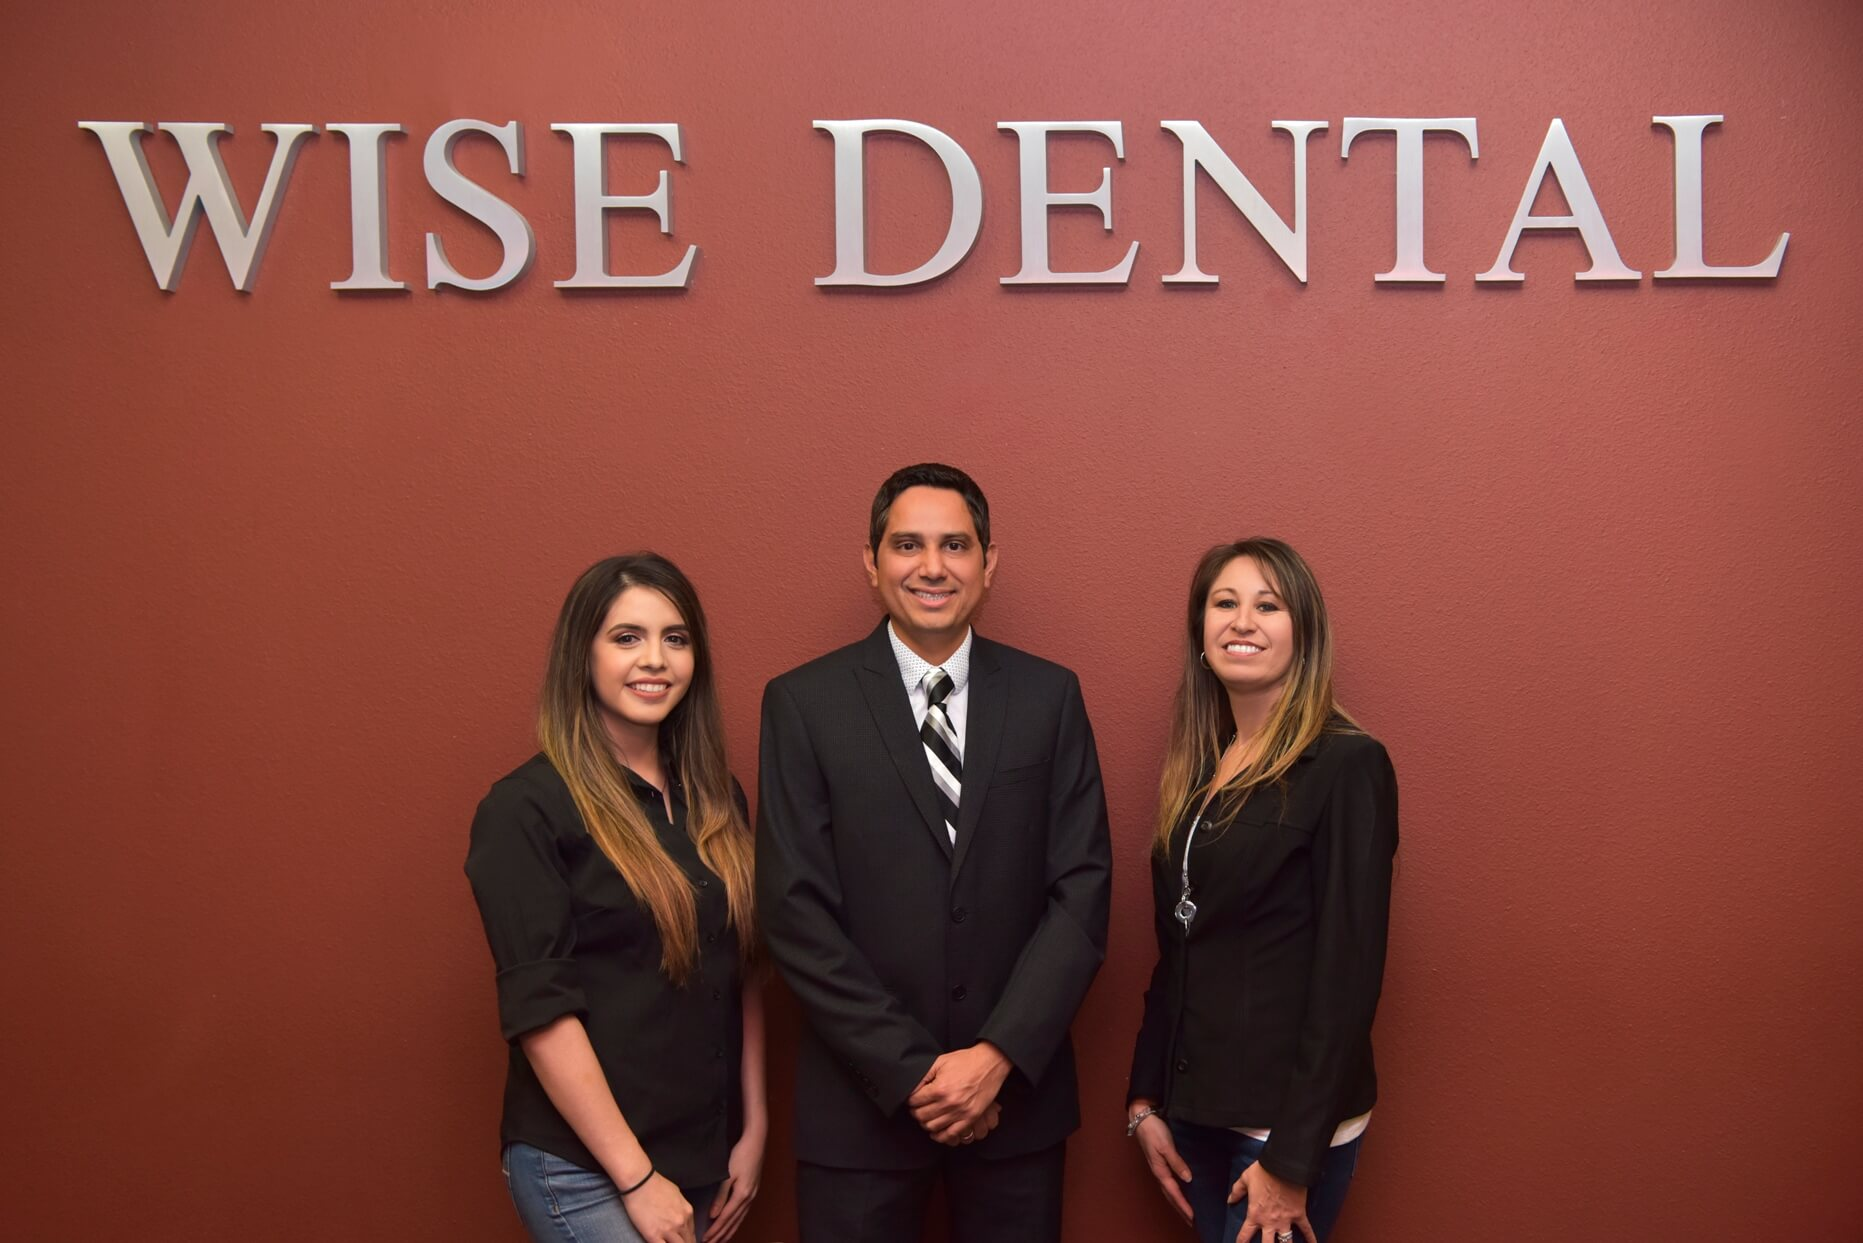 Dr. Patel (Managing Dentist) with Office Manager and Assistant Manager